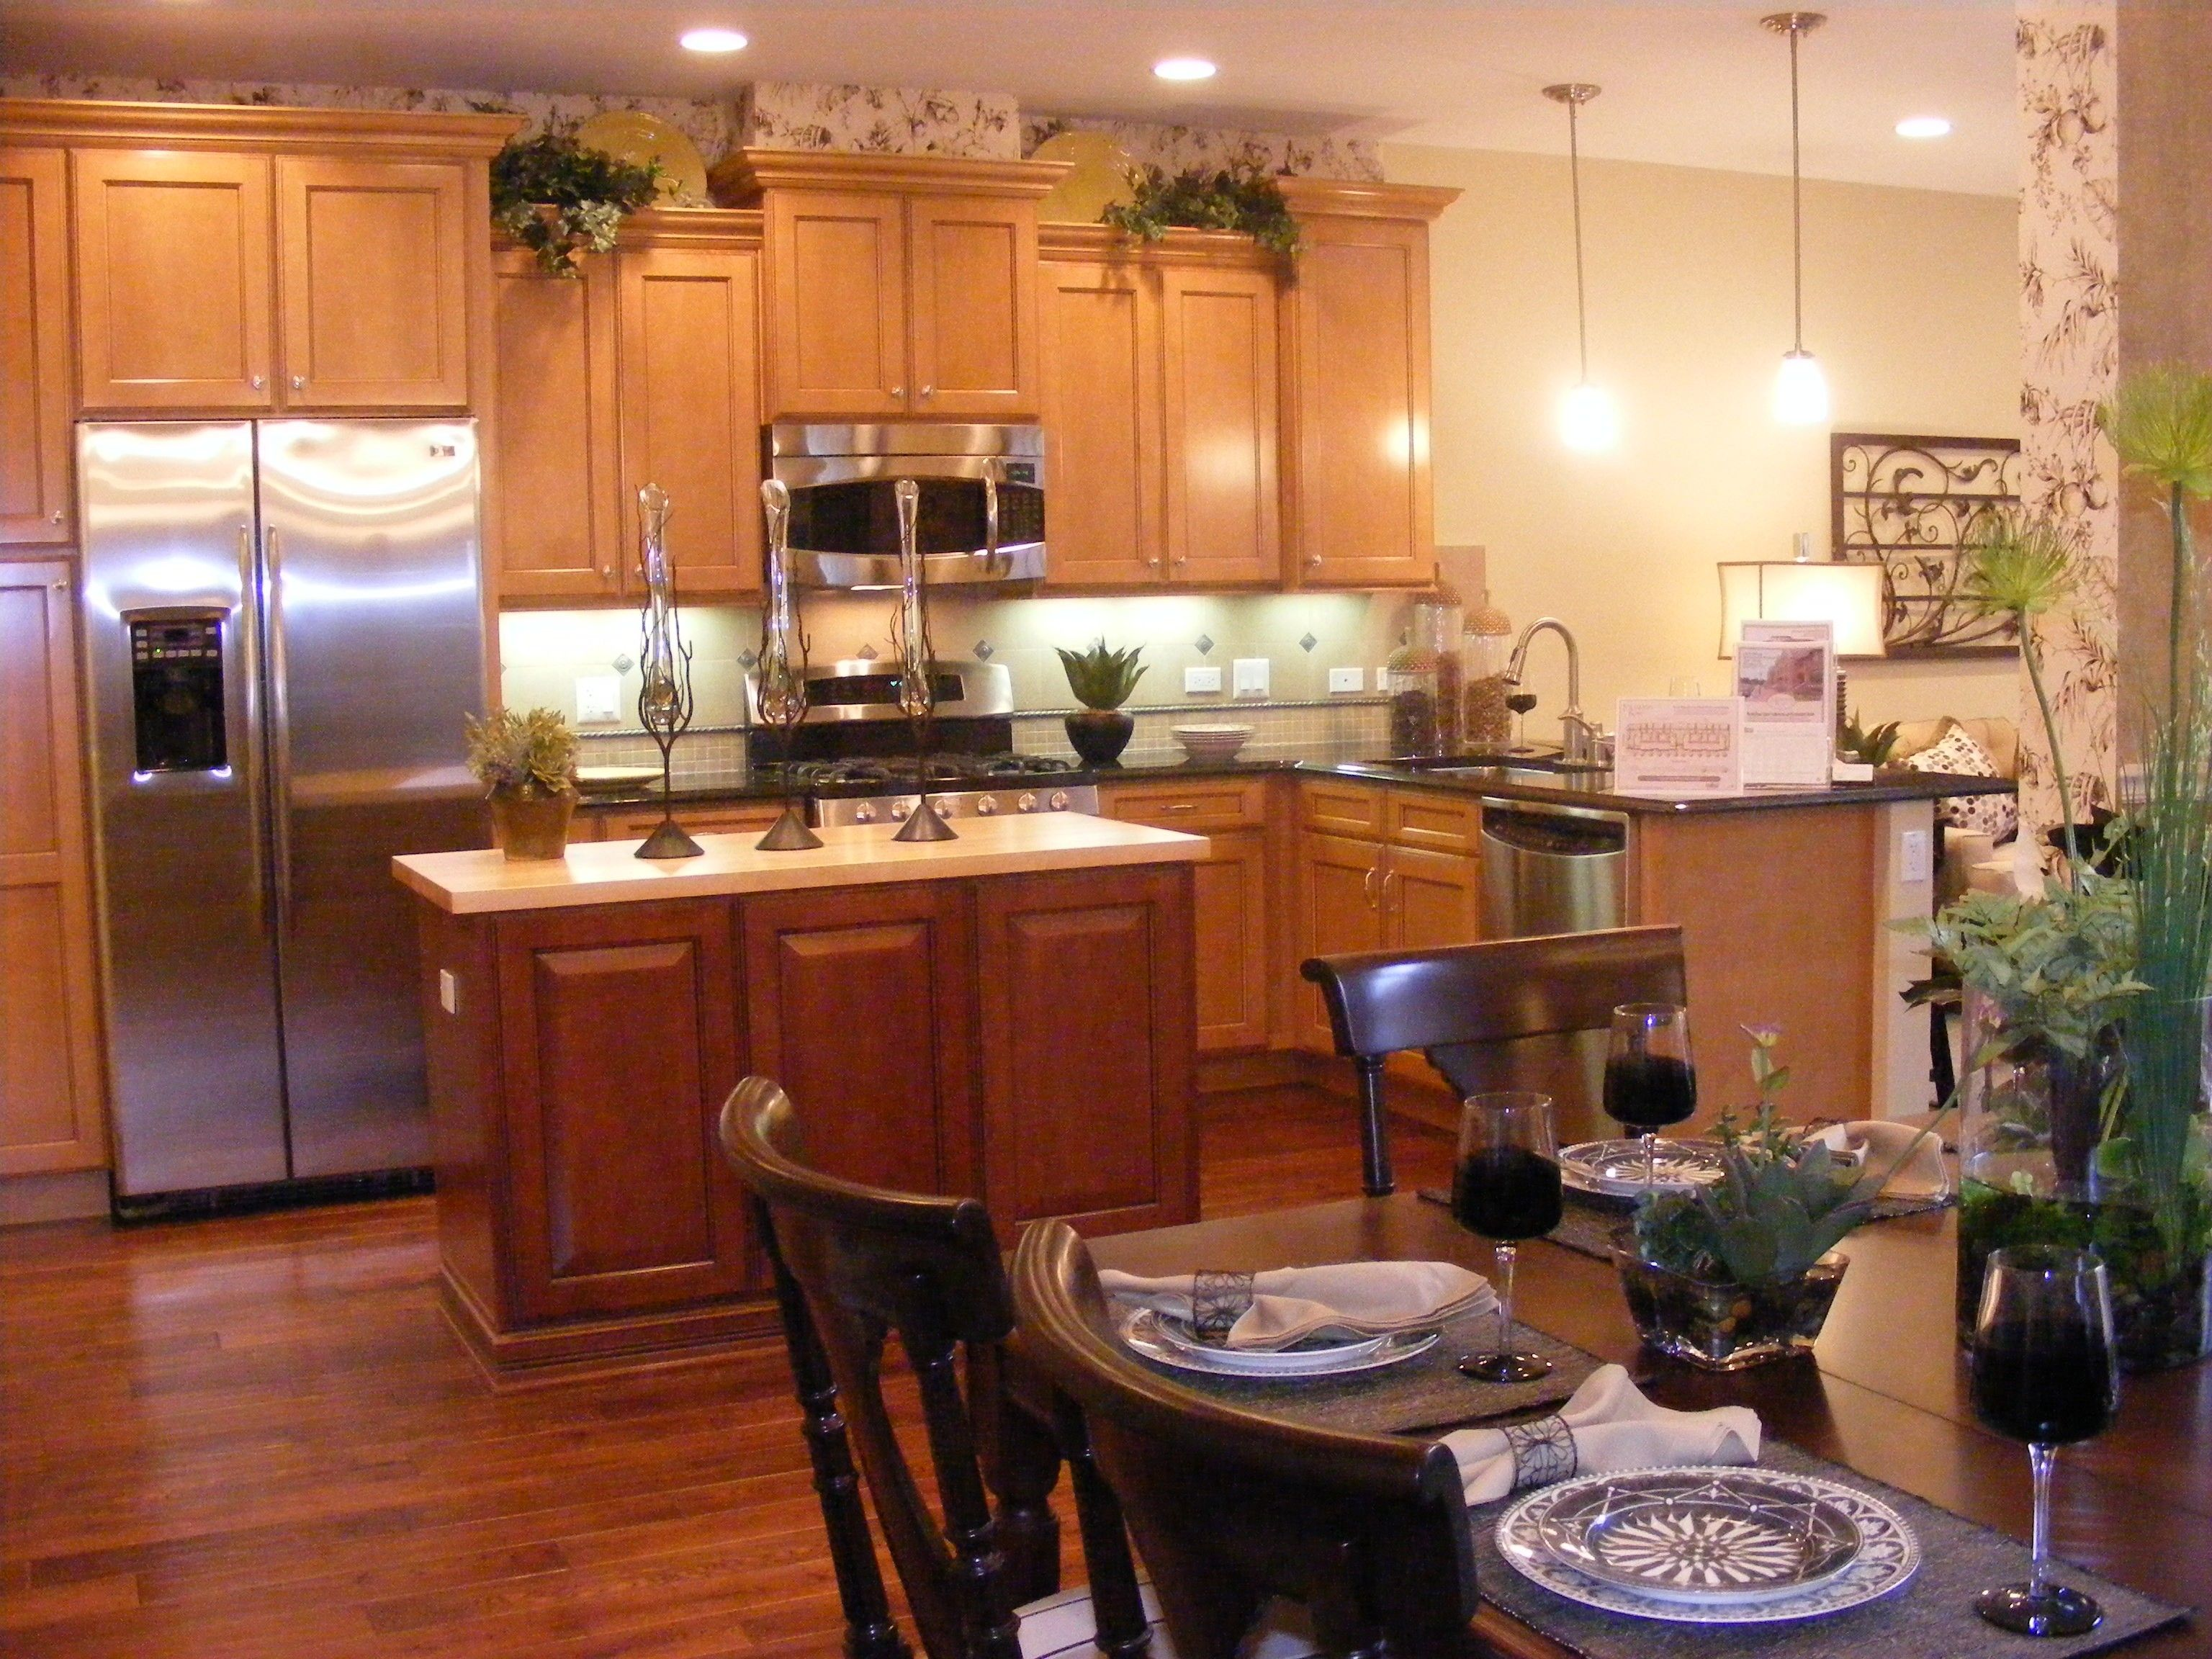 Model Home Kitchen Interesting Pics Of Sweet Model Kitchens Brilliant Model Kitchen Designs Decorating Inspiration